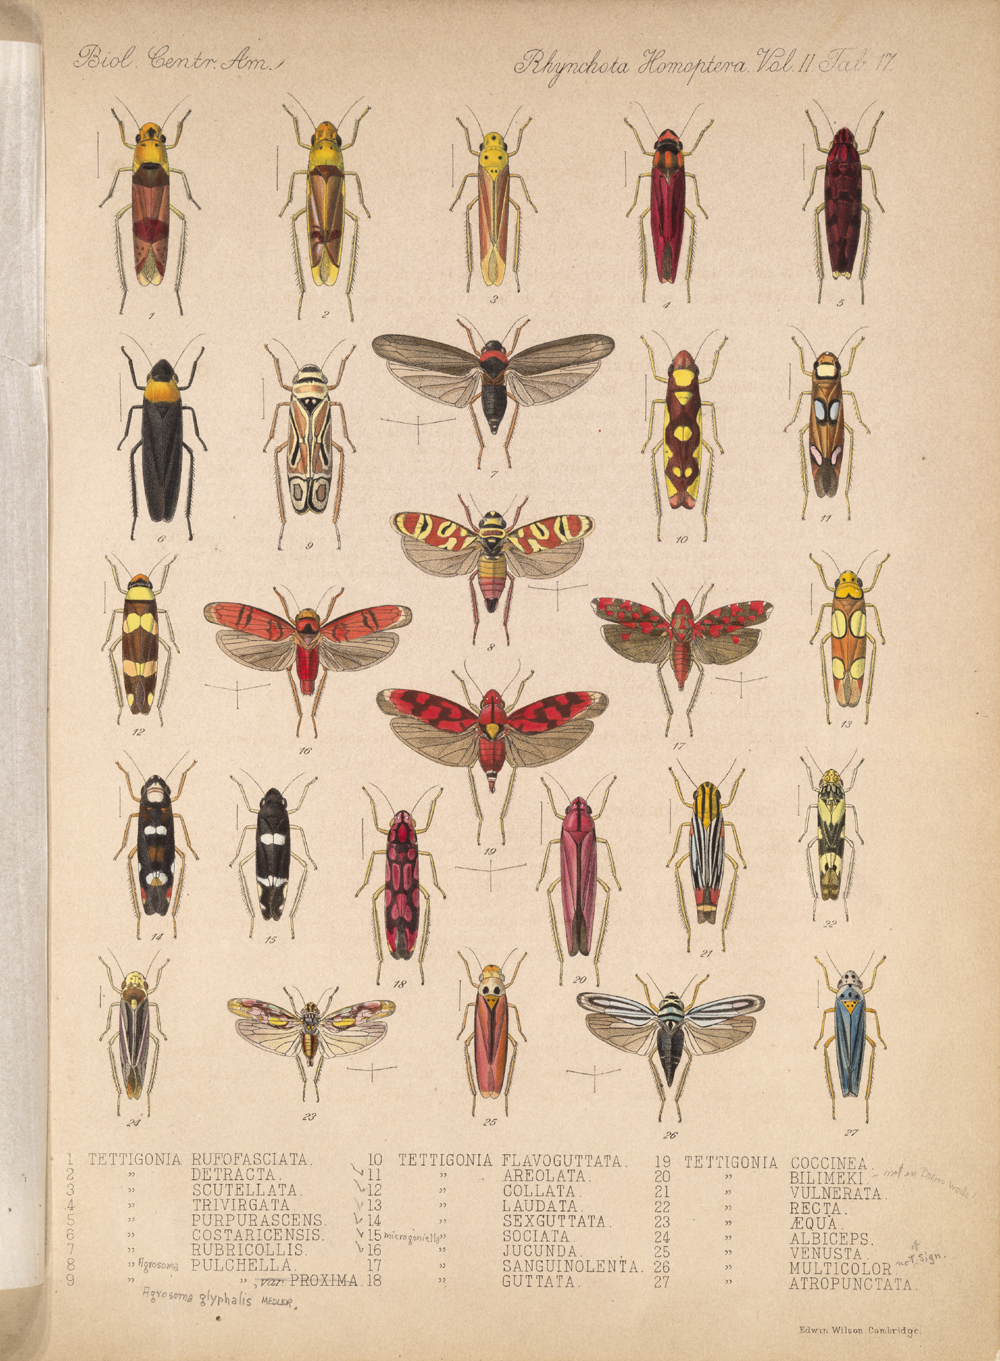 Other Insects,  Image number:bca_18_02_01_375